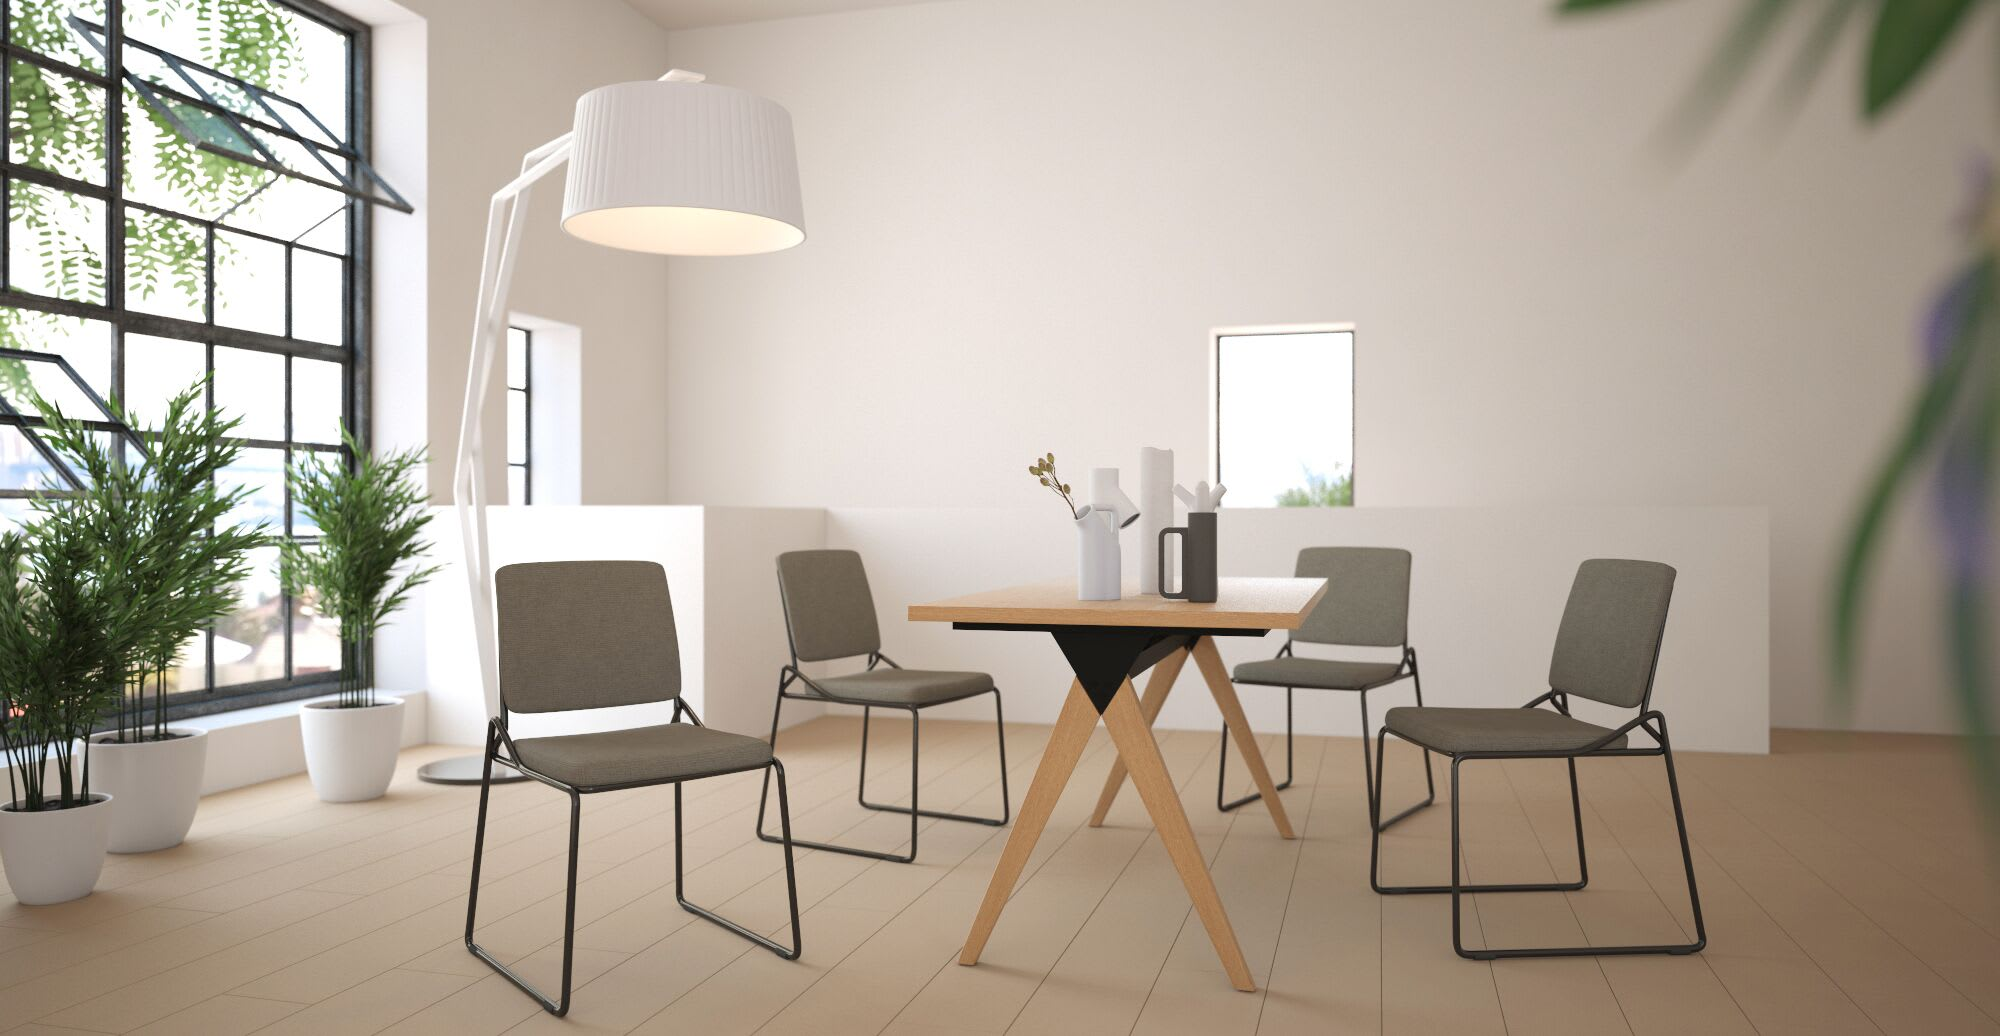 A minimal dining set in a designed space